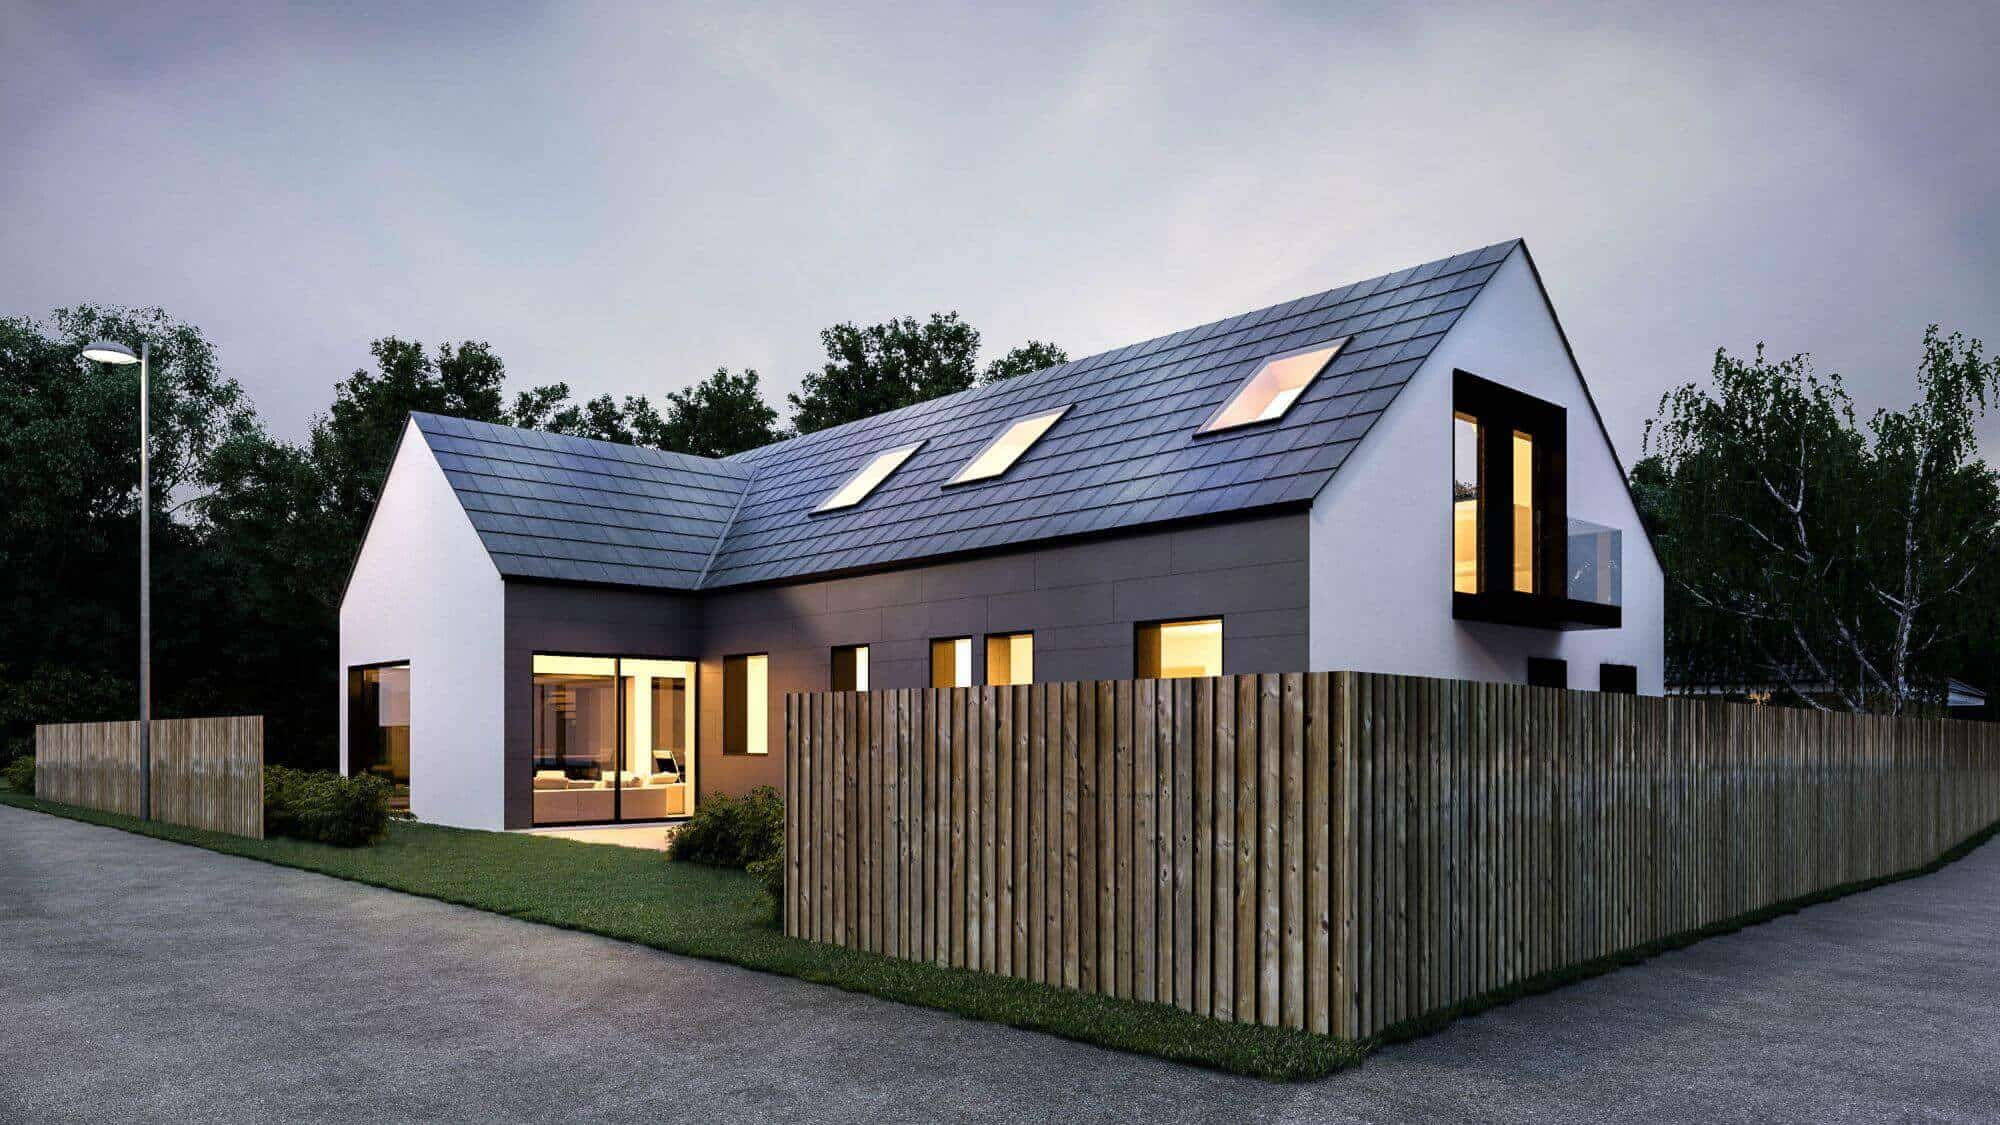 Mesmerizing Scandinavian Home Exterior Designs Ideas - The Architecture Designs